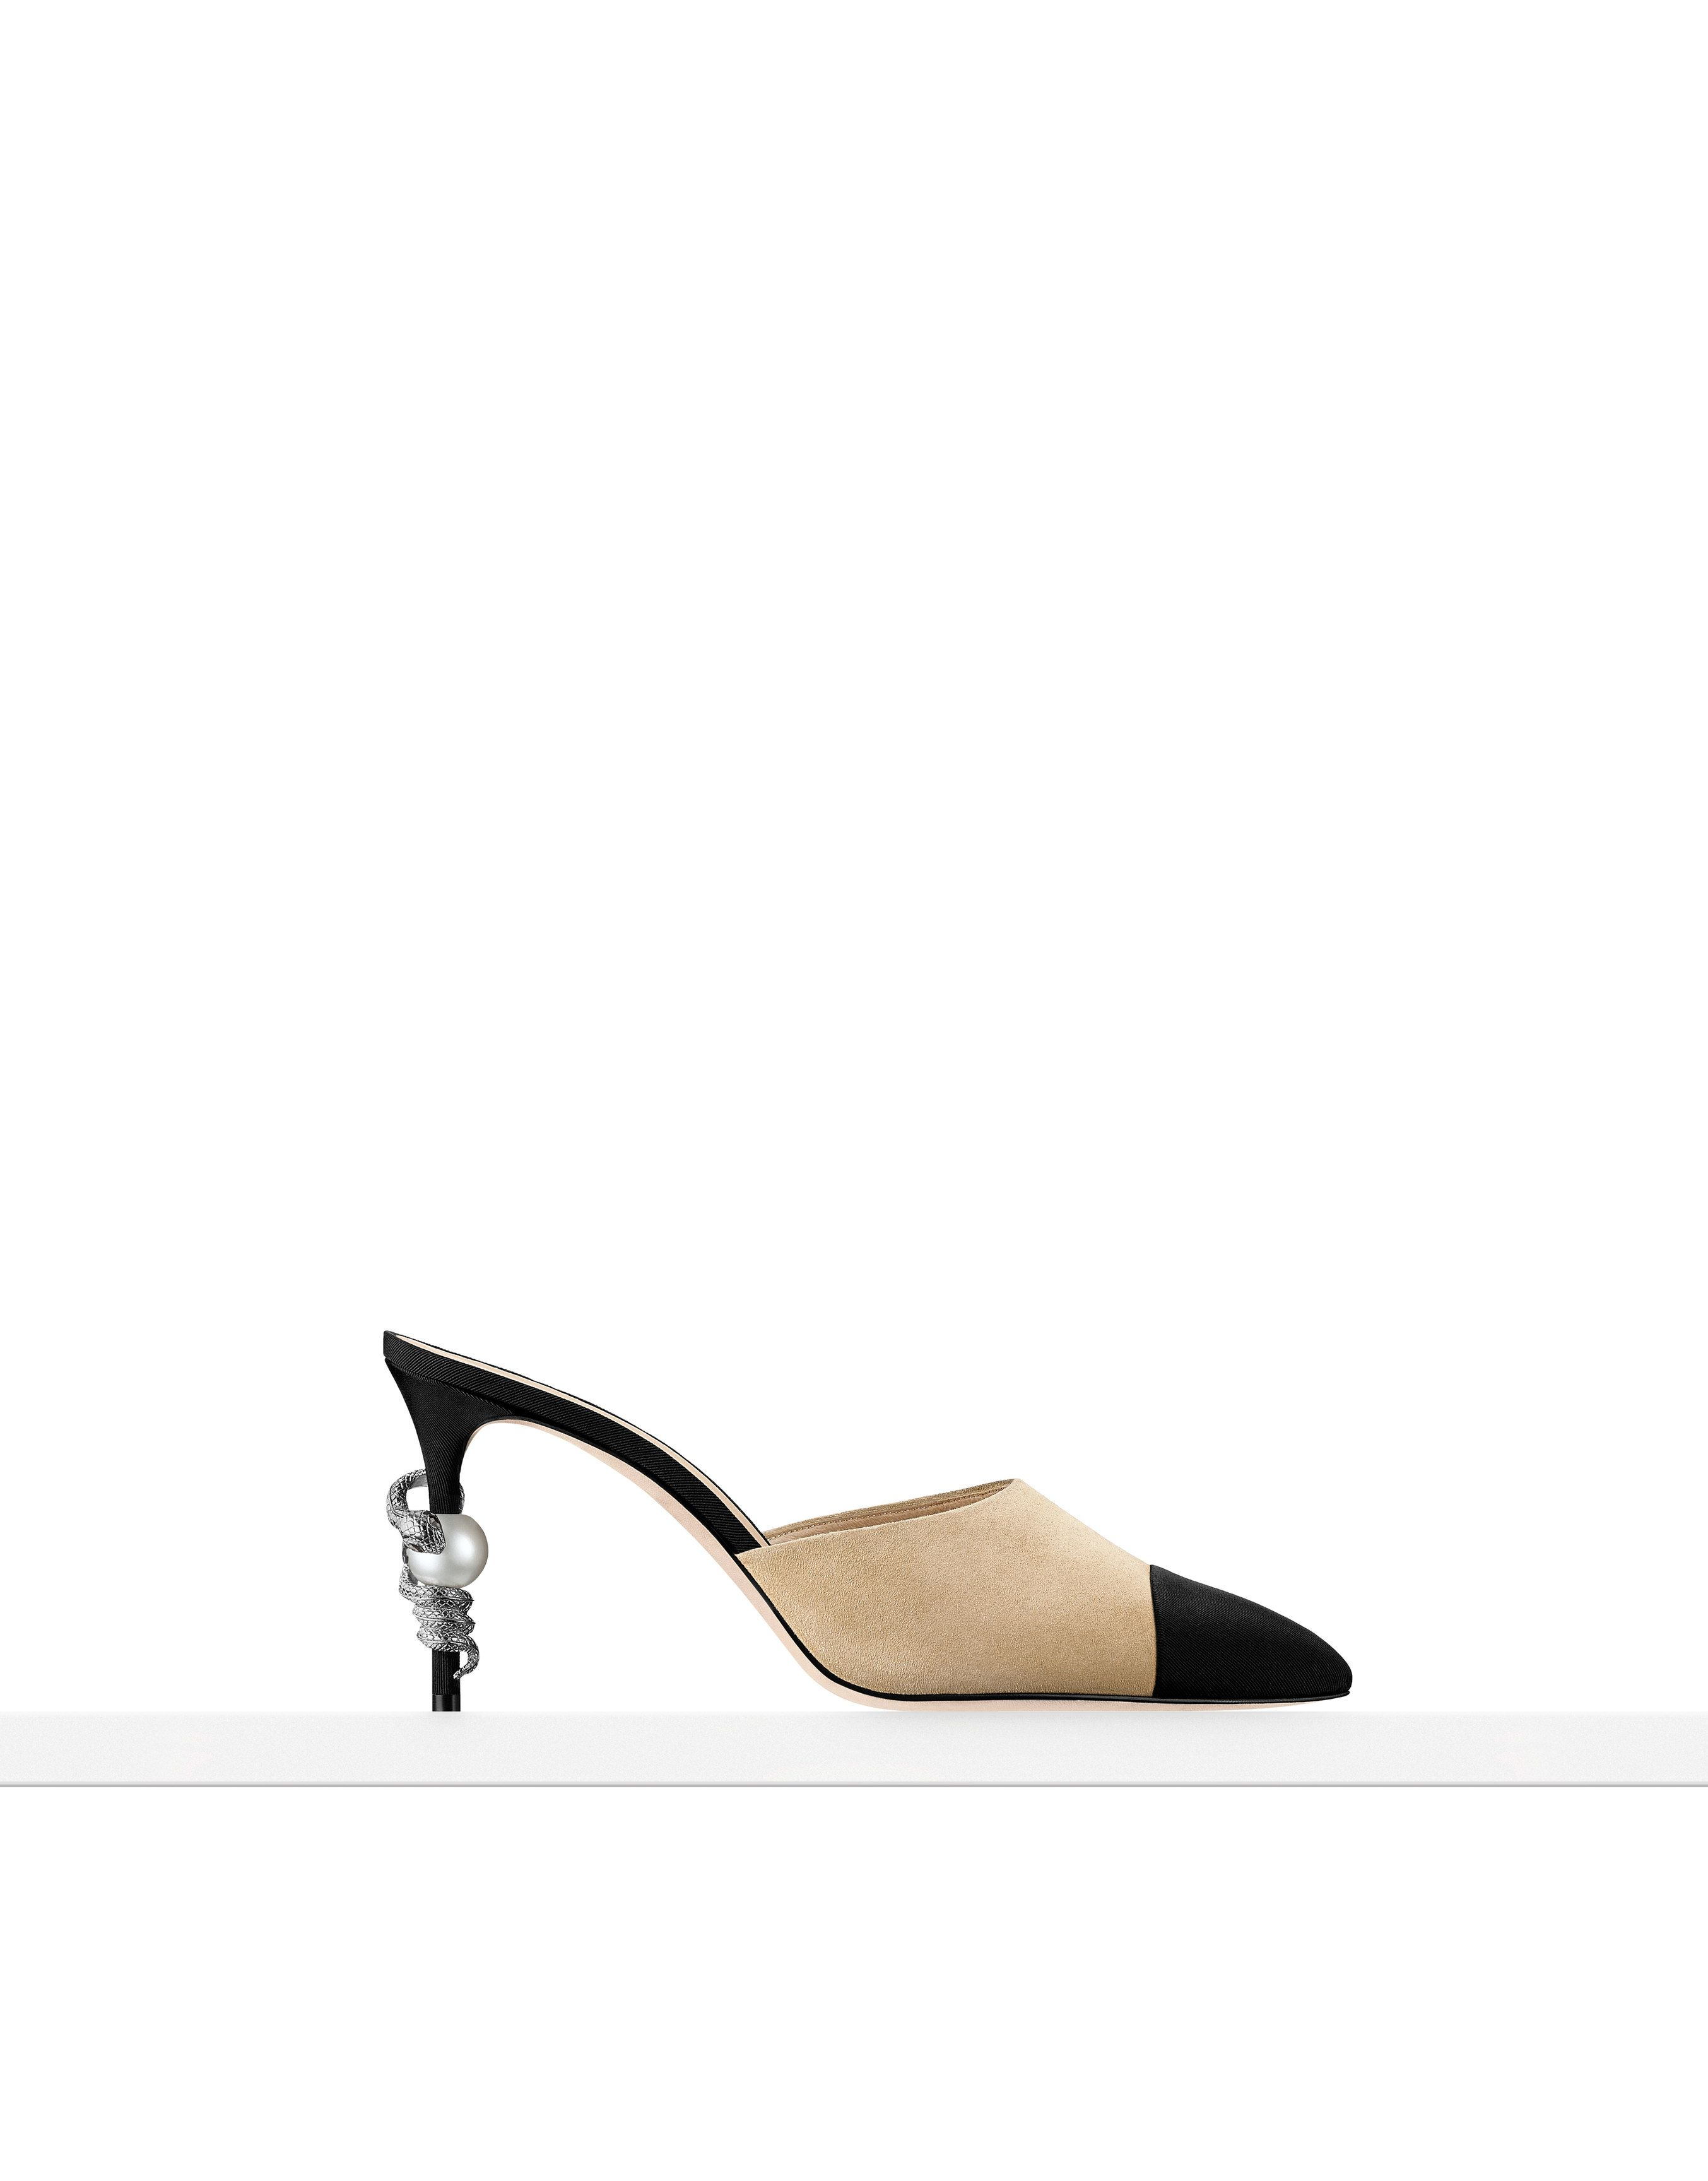 Chanel fashion, Chanel mules, Chanel shoes